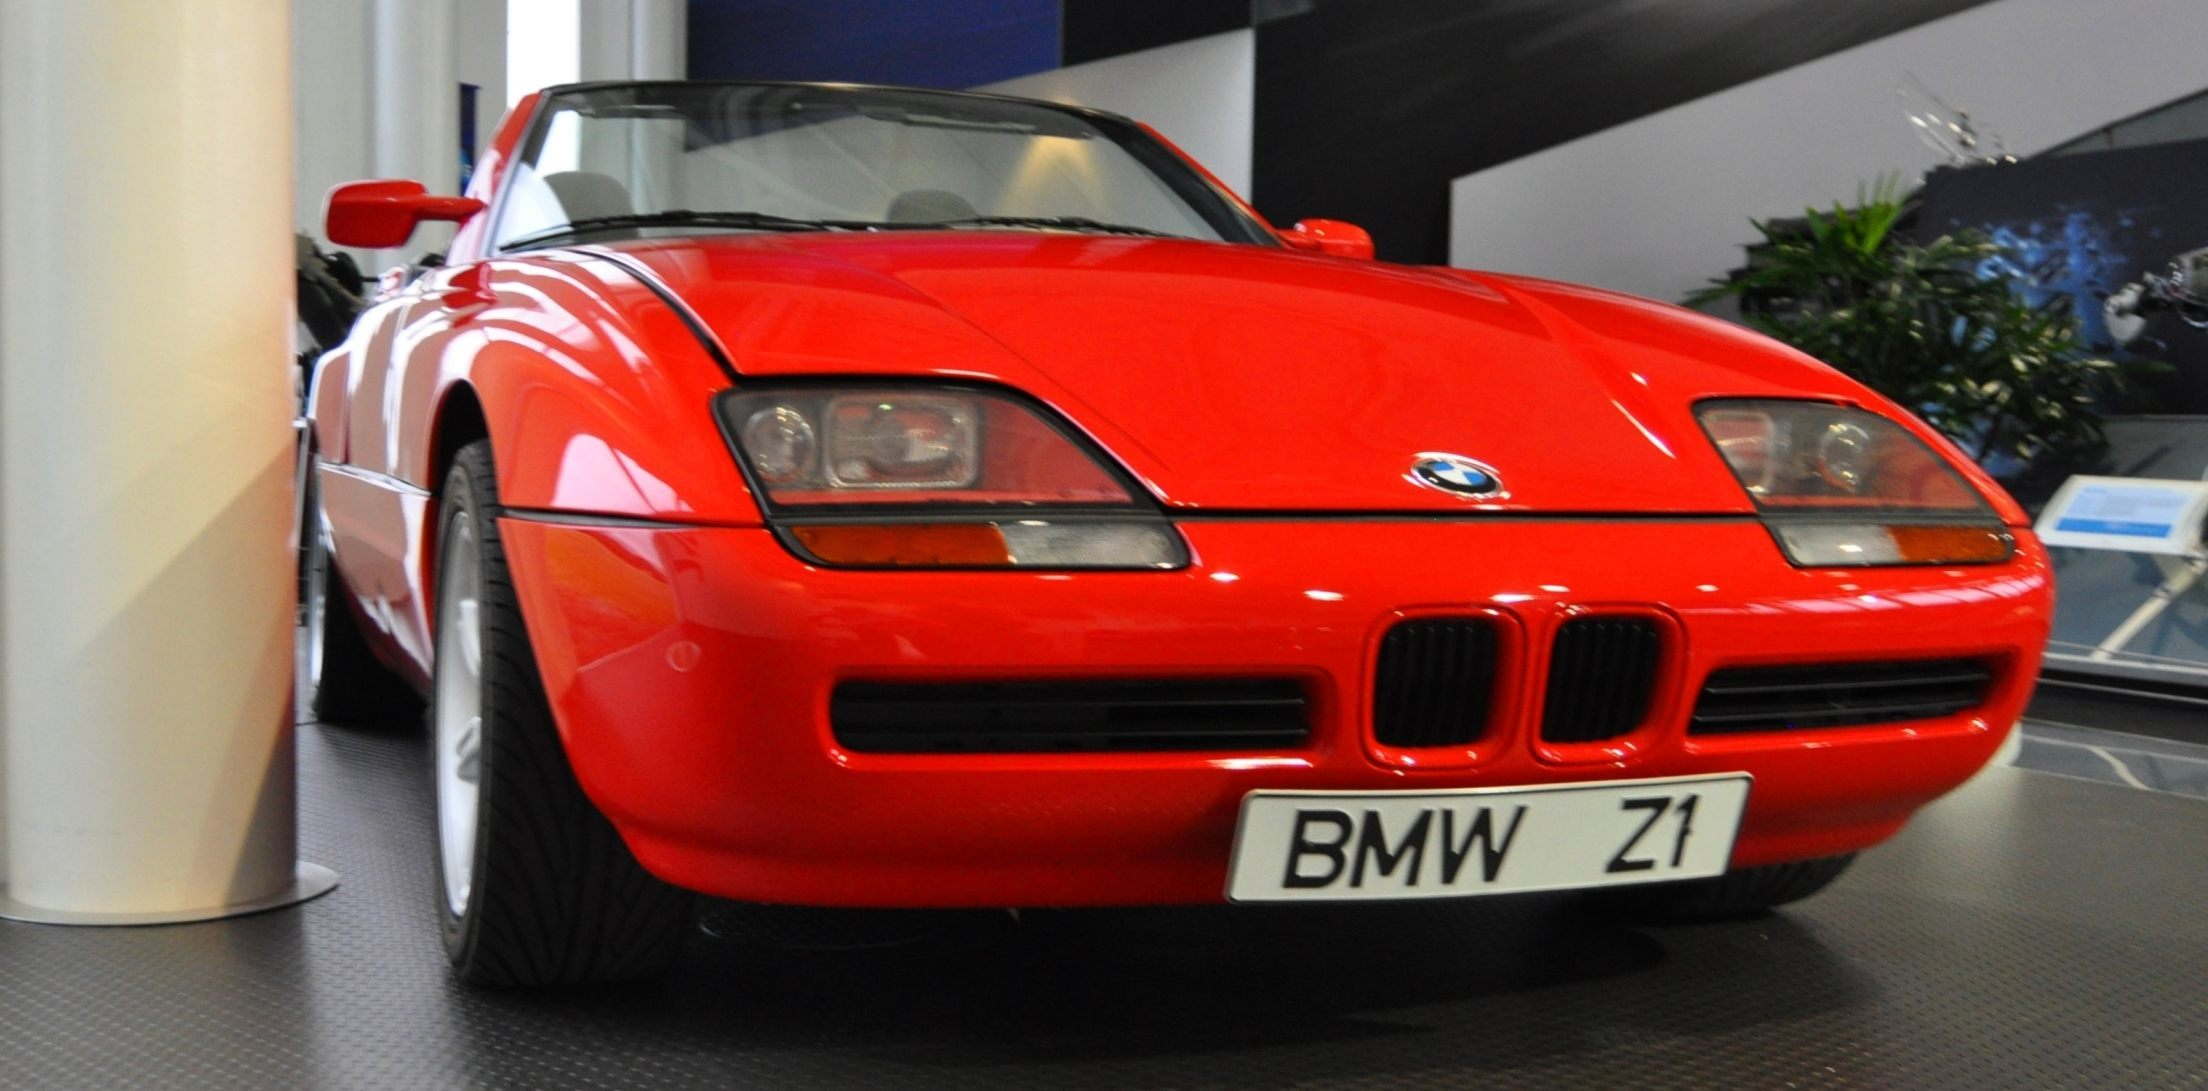 Car-Museums-Showcase-1989-BMW-Z1-at-Zentrum-in-Spartanburg-SC-High-Demand-+-High-Price-Led-Directly-to-US-Built-Z3-13 Stunning Bmw Z1 Hardtop for Sale Cars Trend